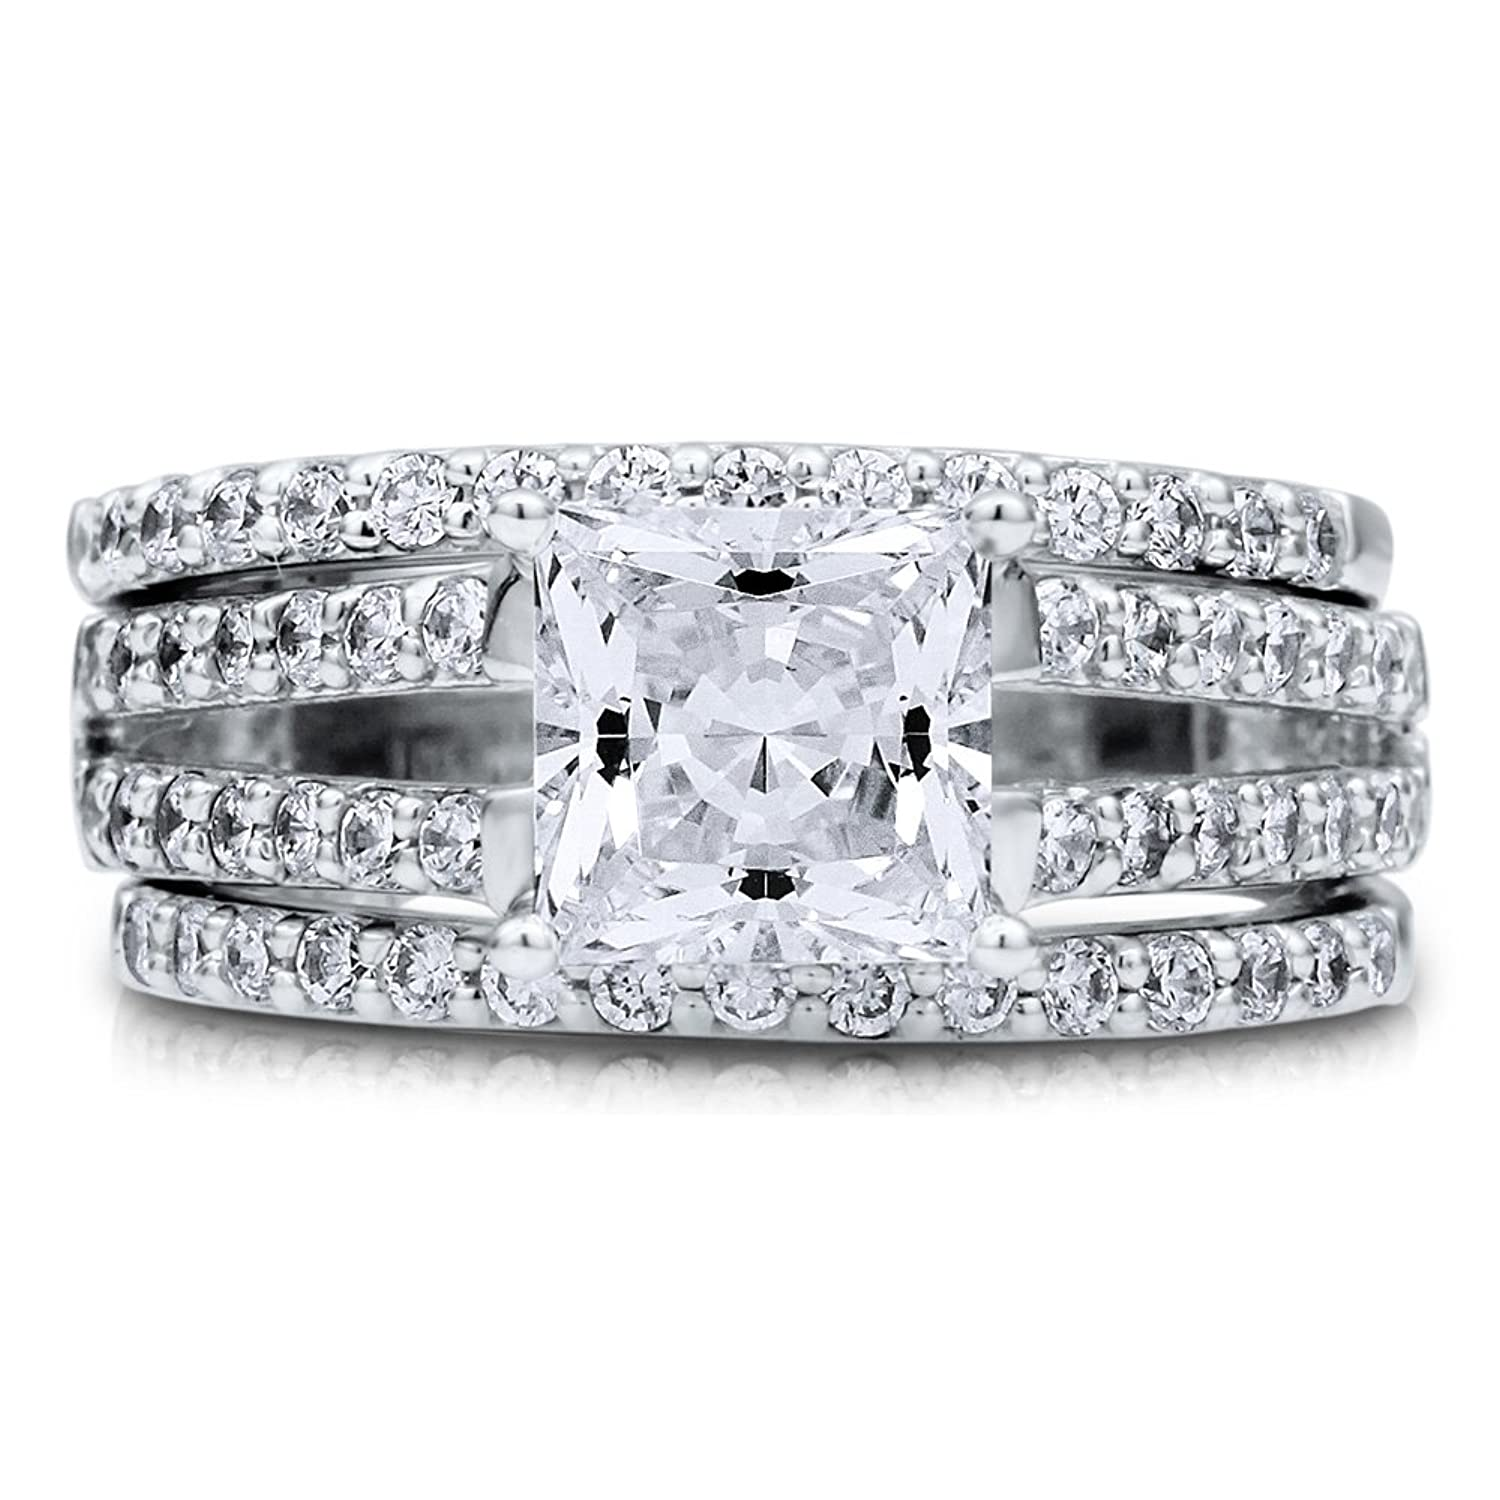 Amazoncom BERRICLE Rhodium Plated Sterling Silver Princess Cut